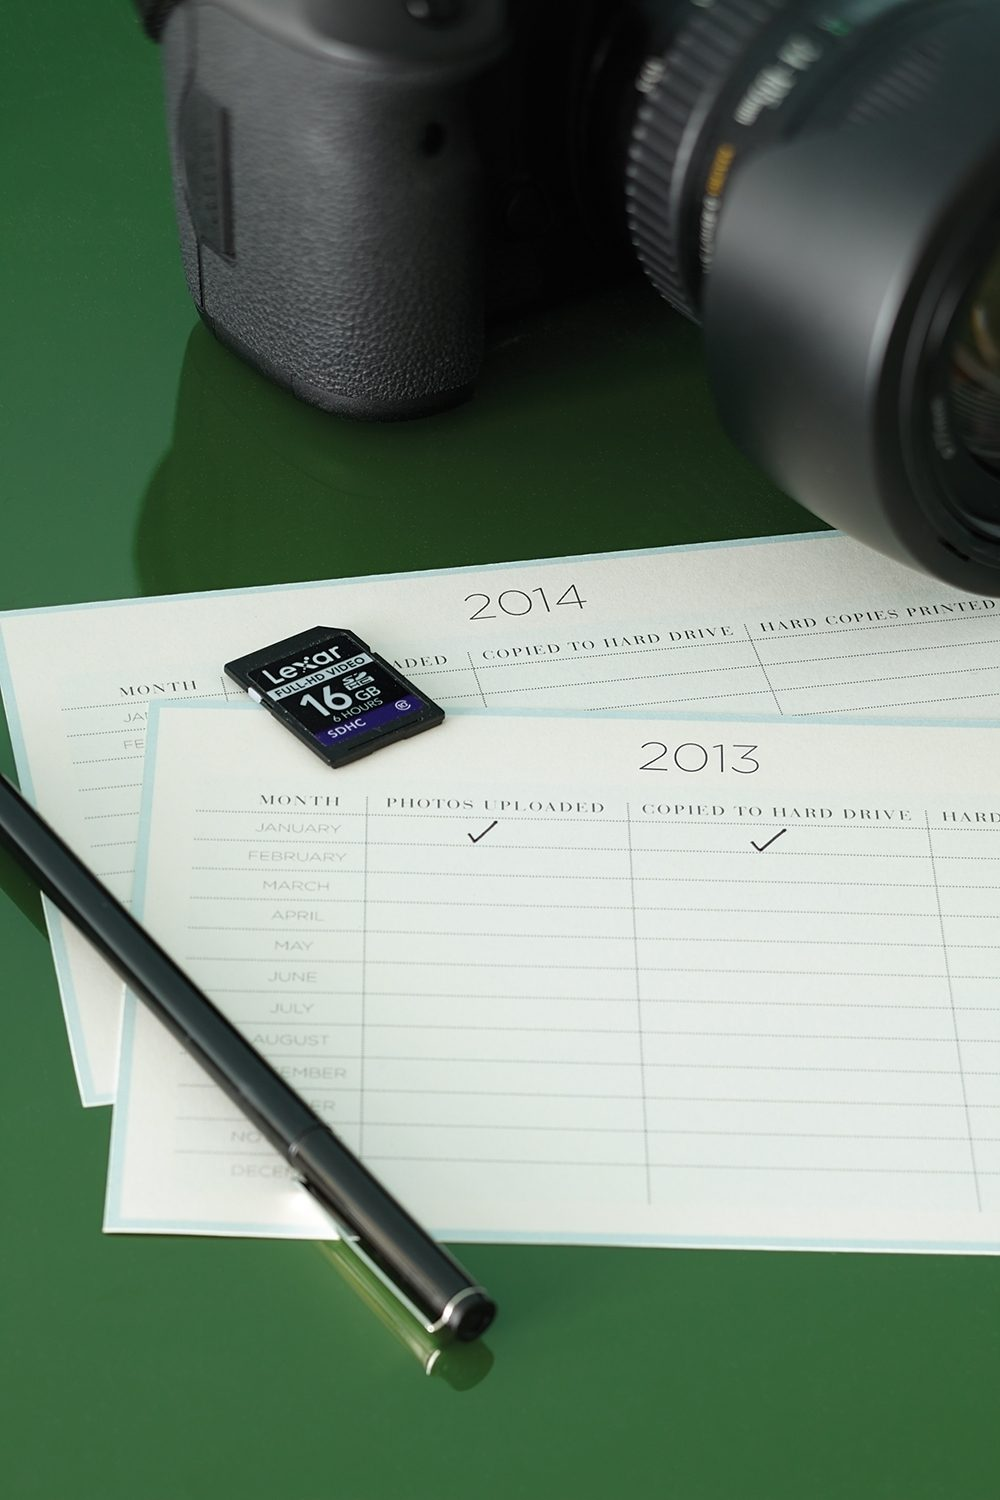 A camera memory card on a tracking document